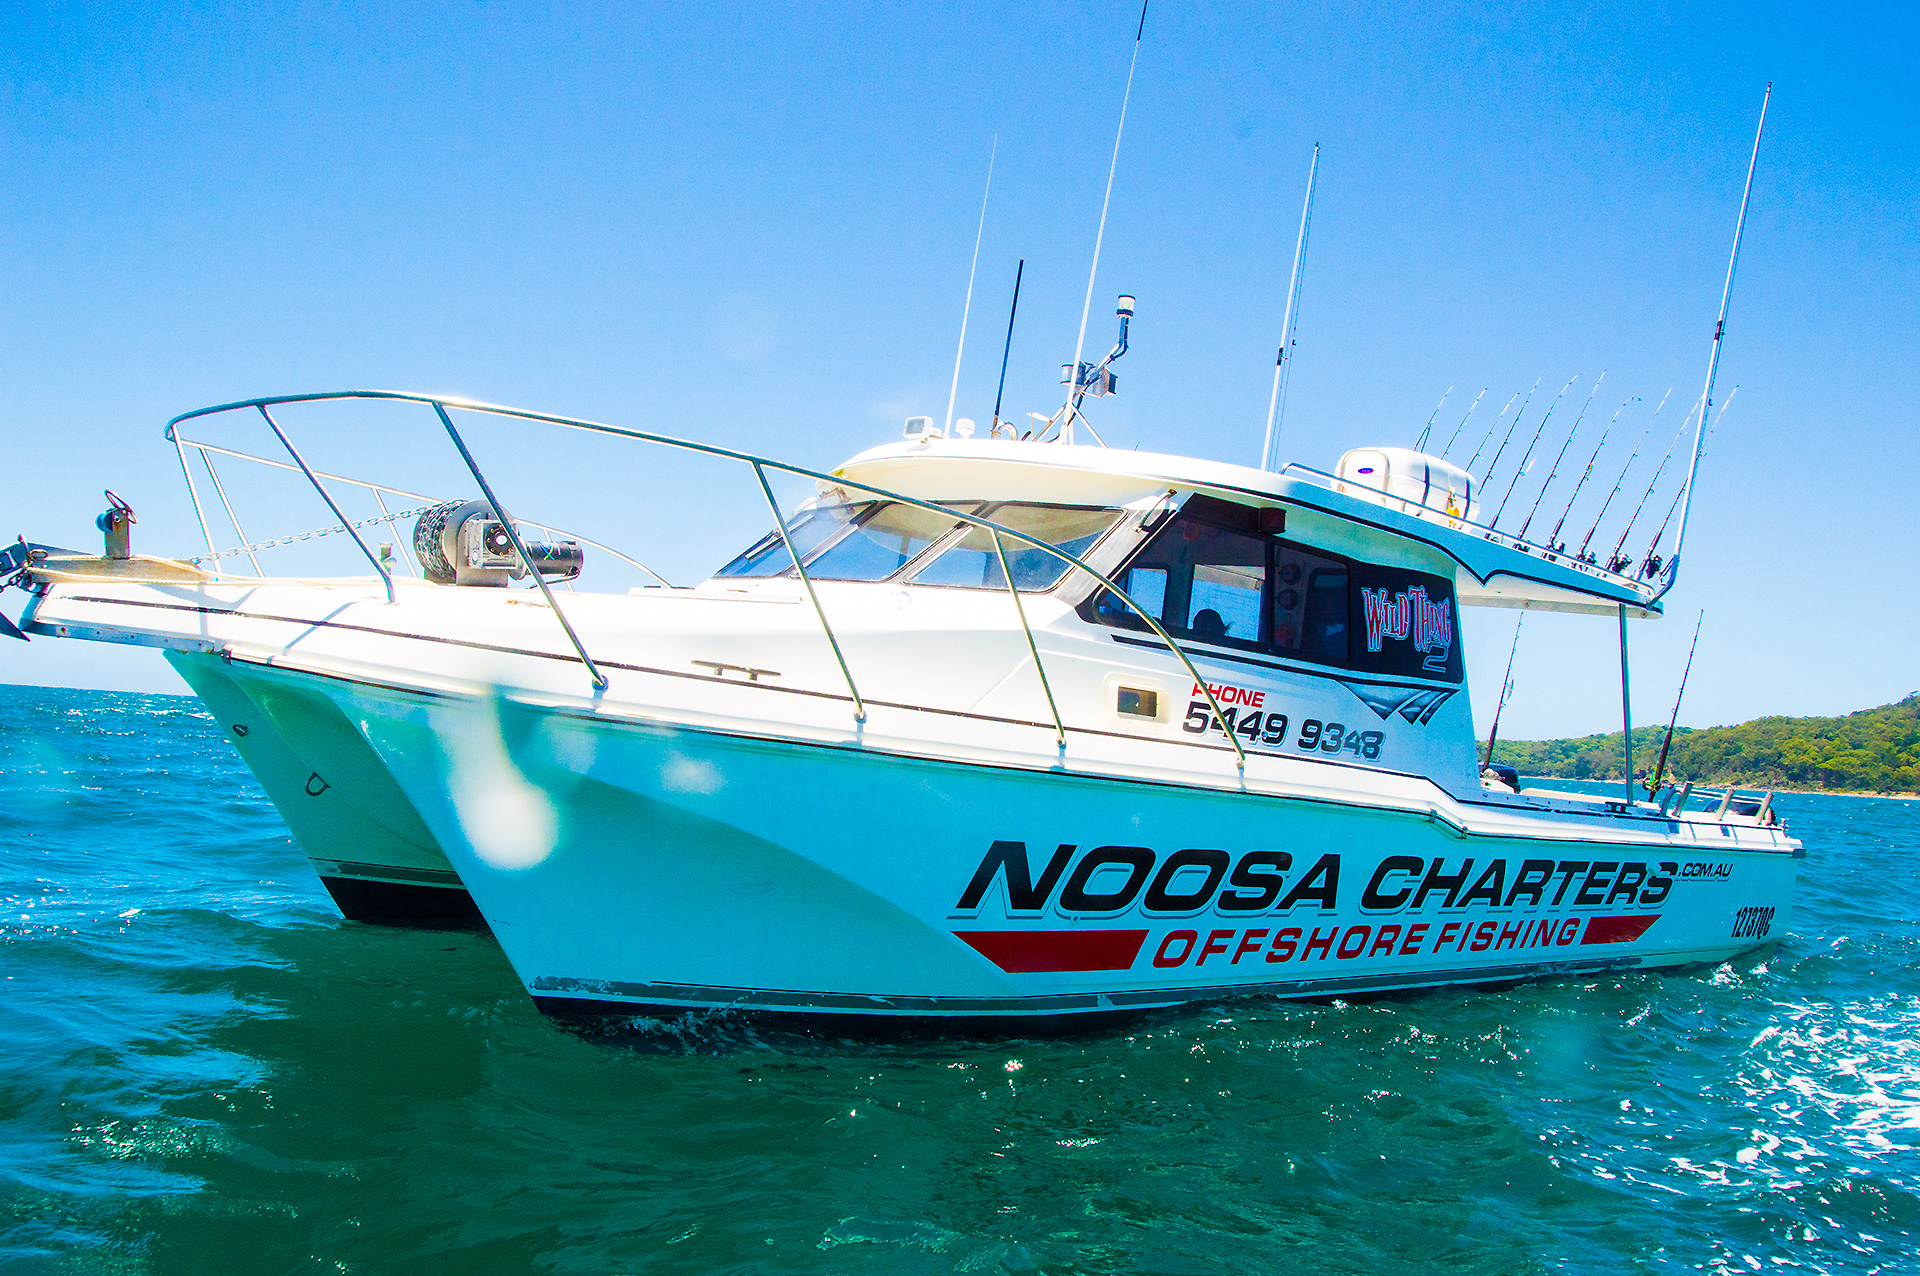 Offshore fishing charters in noosa on wild thing noosa for Charter fishing trip